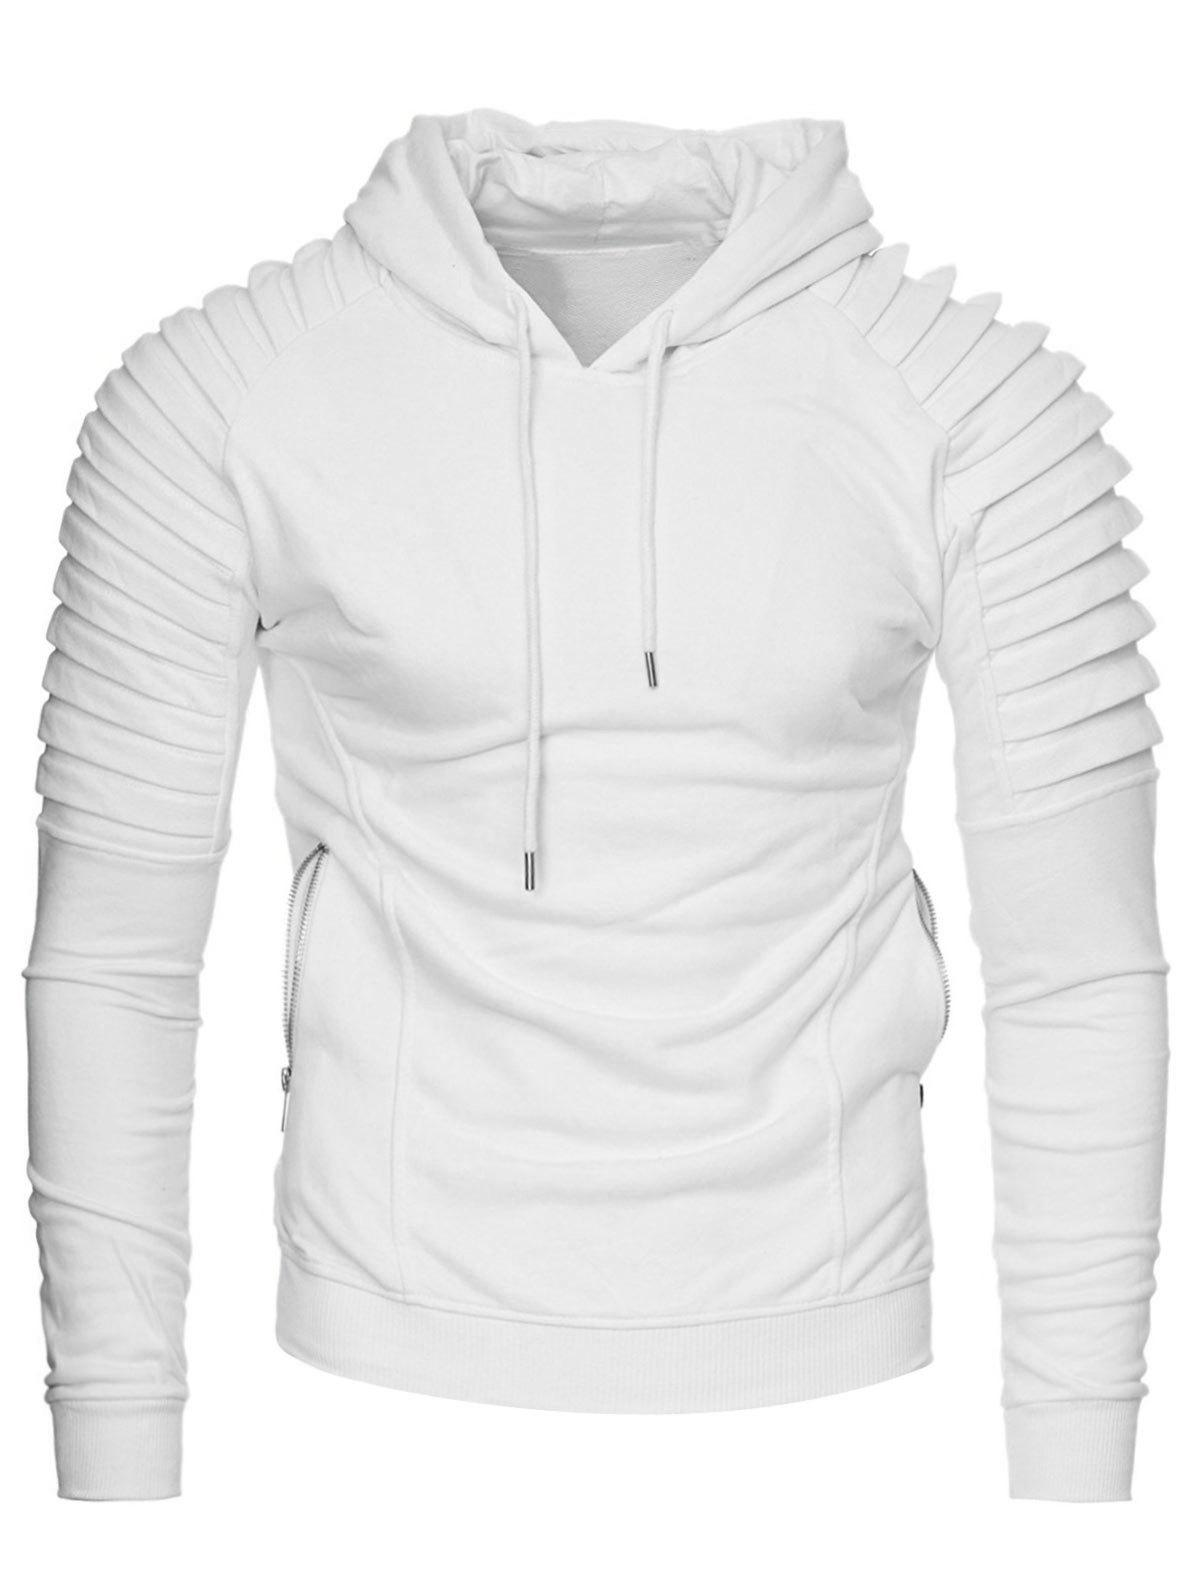 6145df572 2019 Casual Solid Pleated Zip Pocket Fleece Hoodie